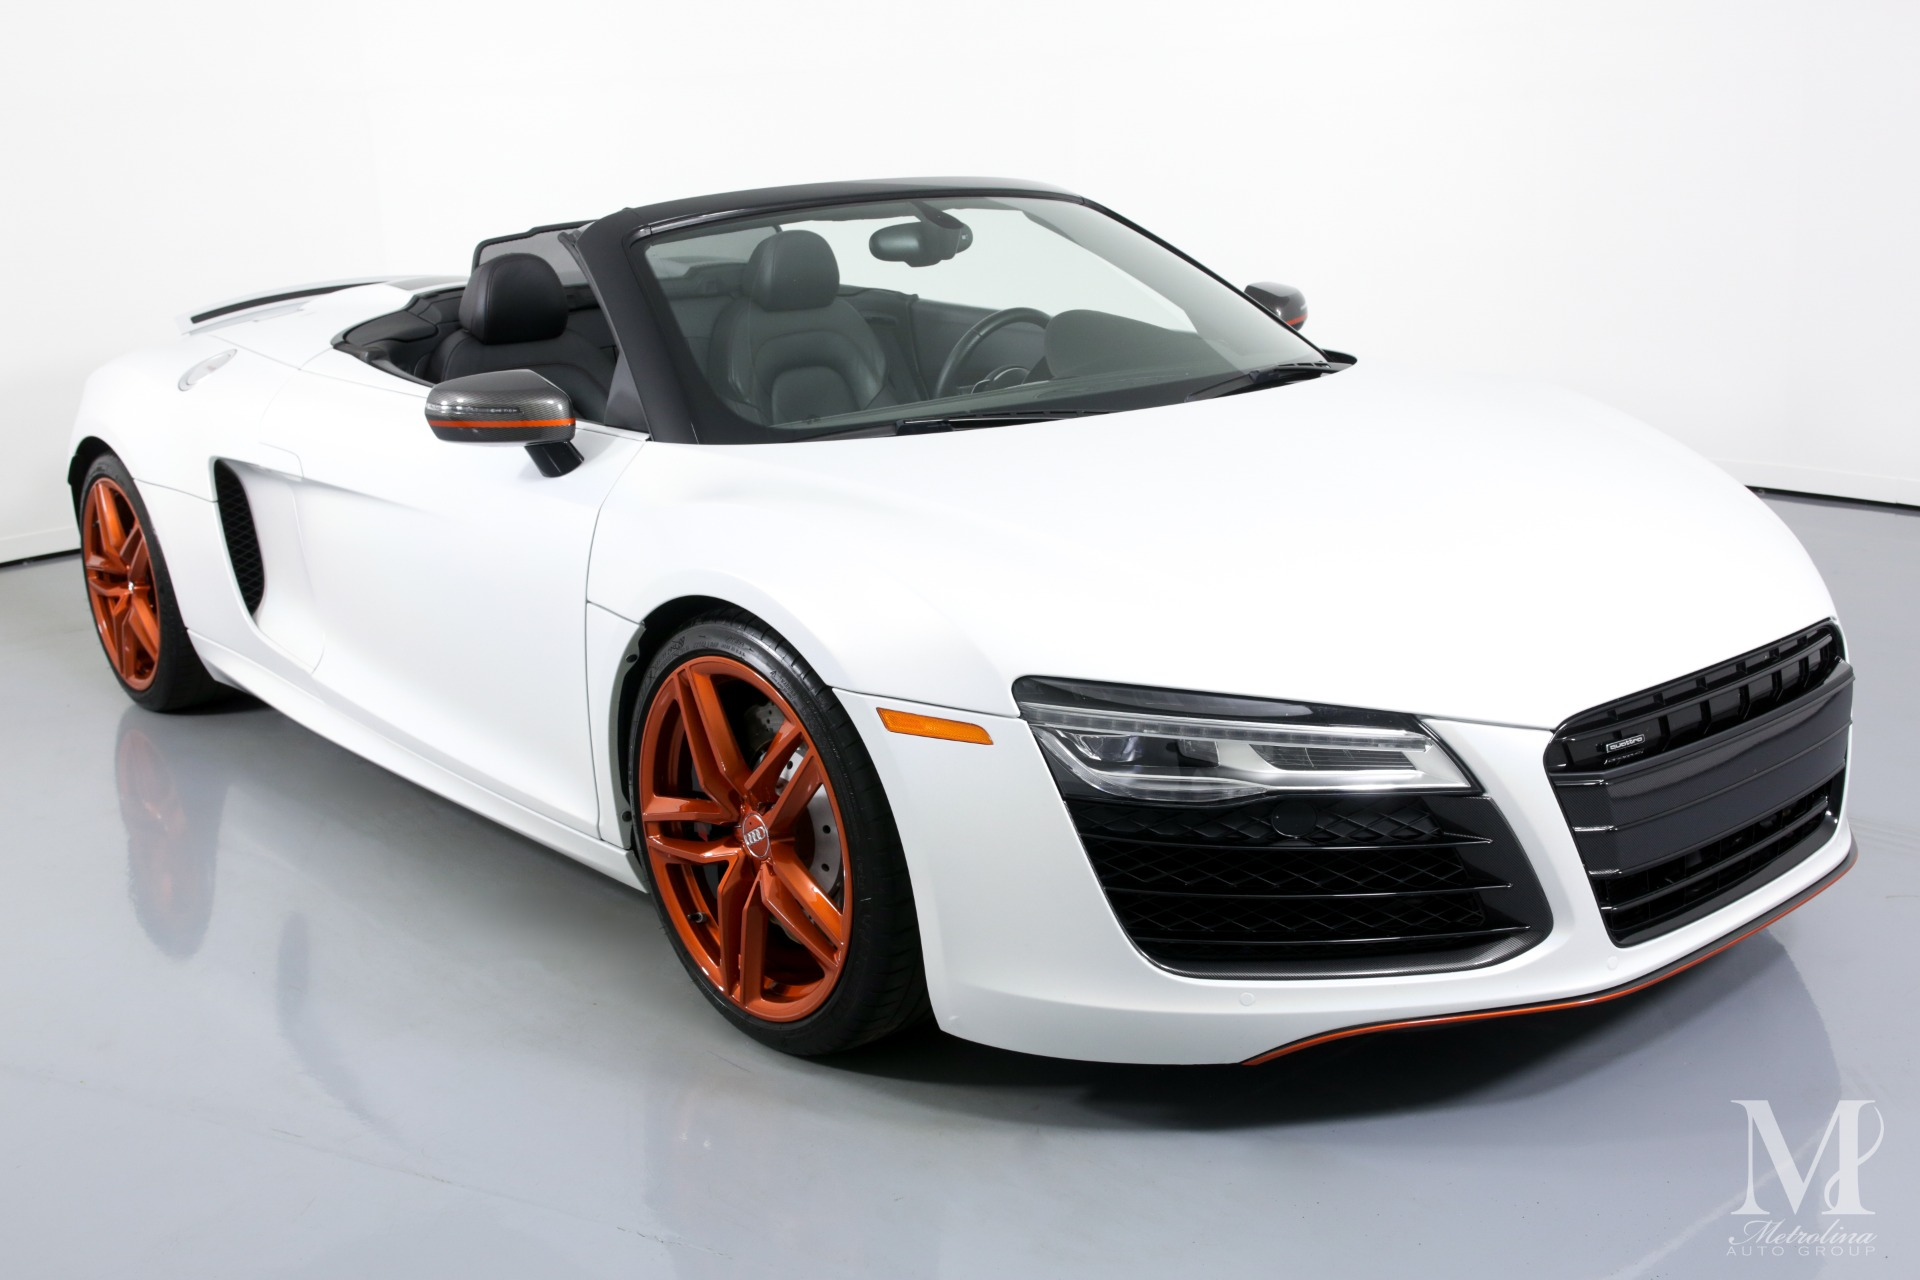 Used 2014 Audi R8 5.2 quattro Spyder for sale $86,996 at Metrolina Auto Group in Charlotte NC 28217 - 3